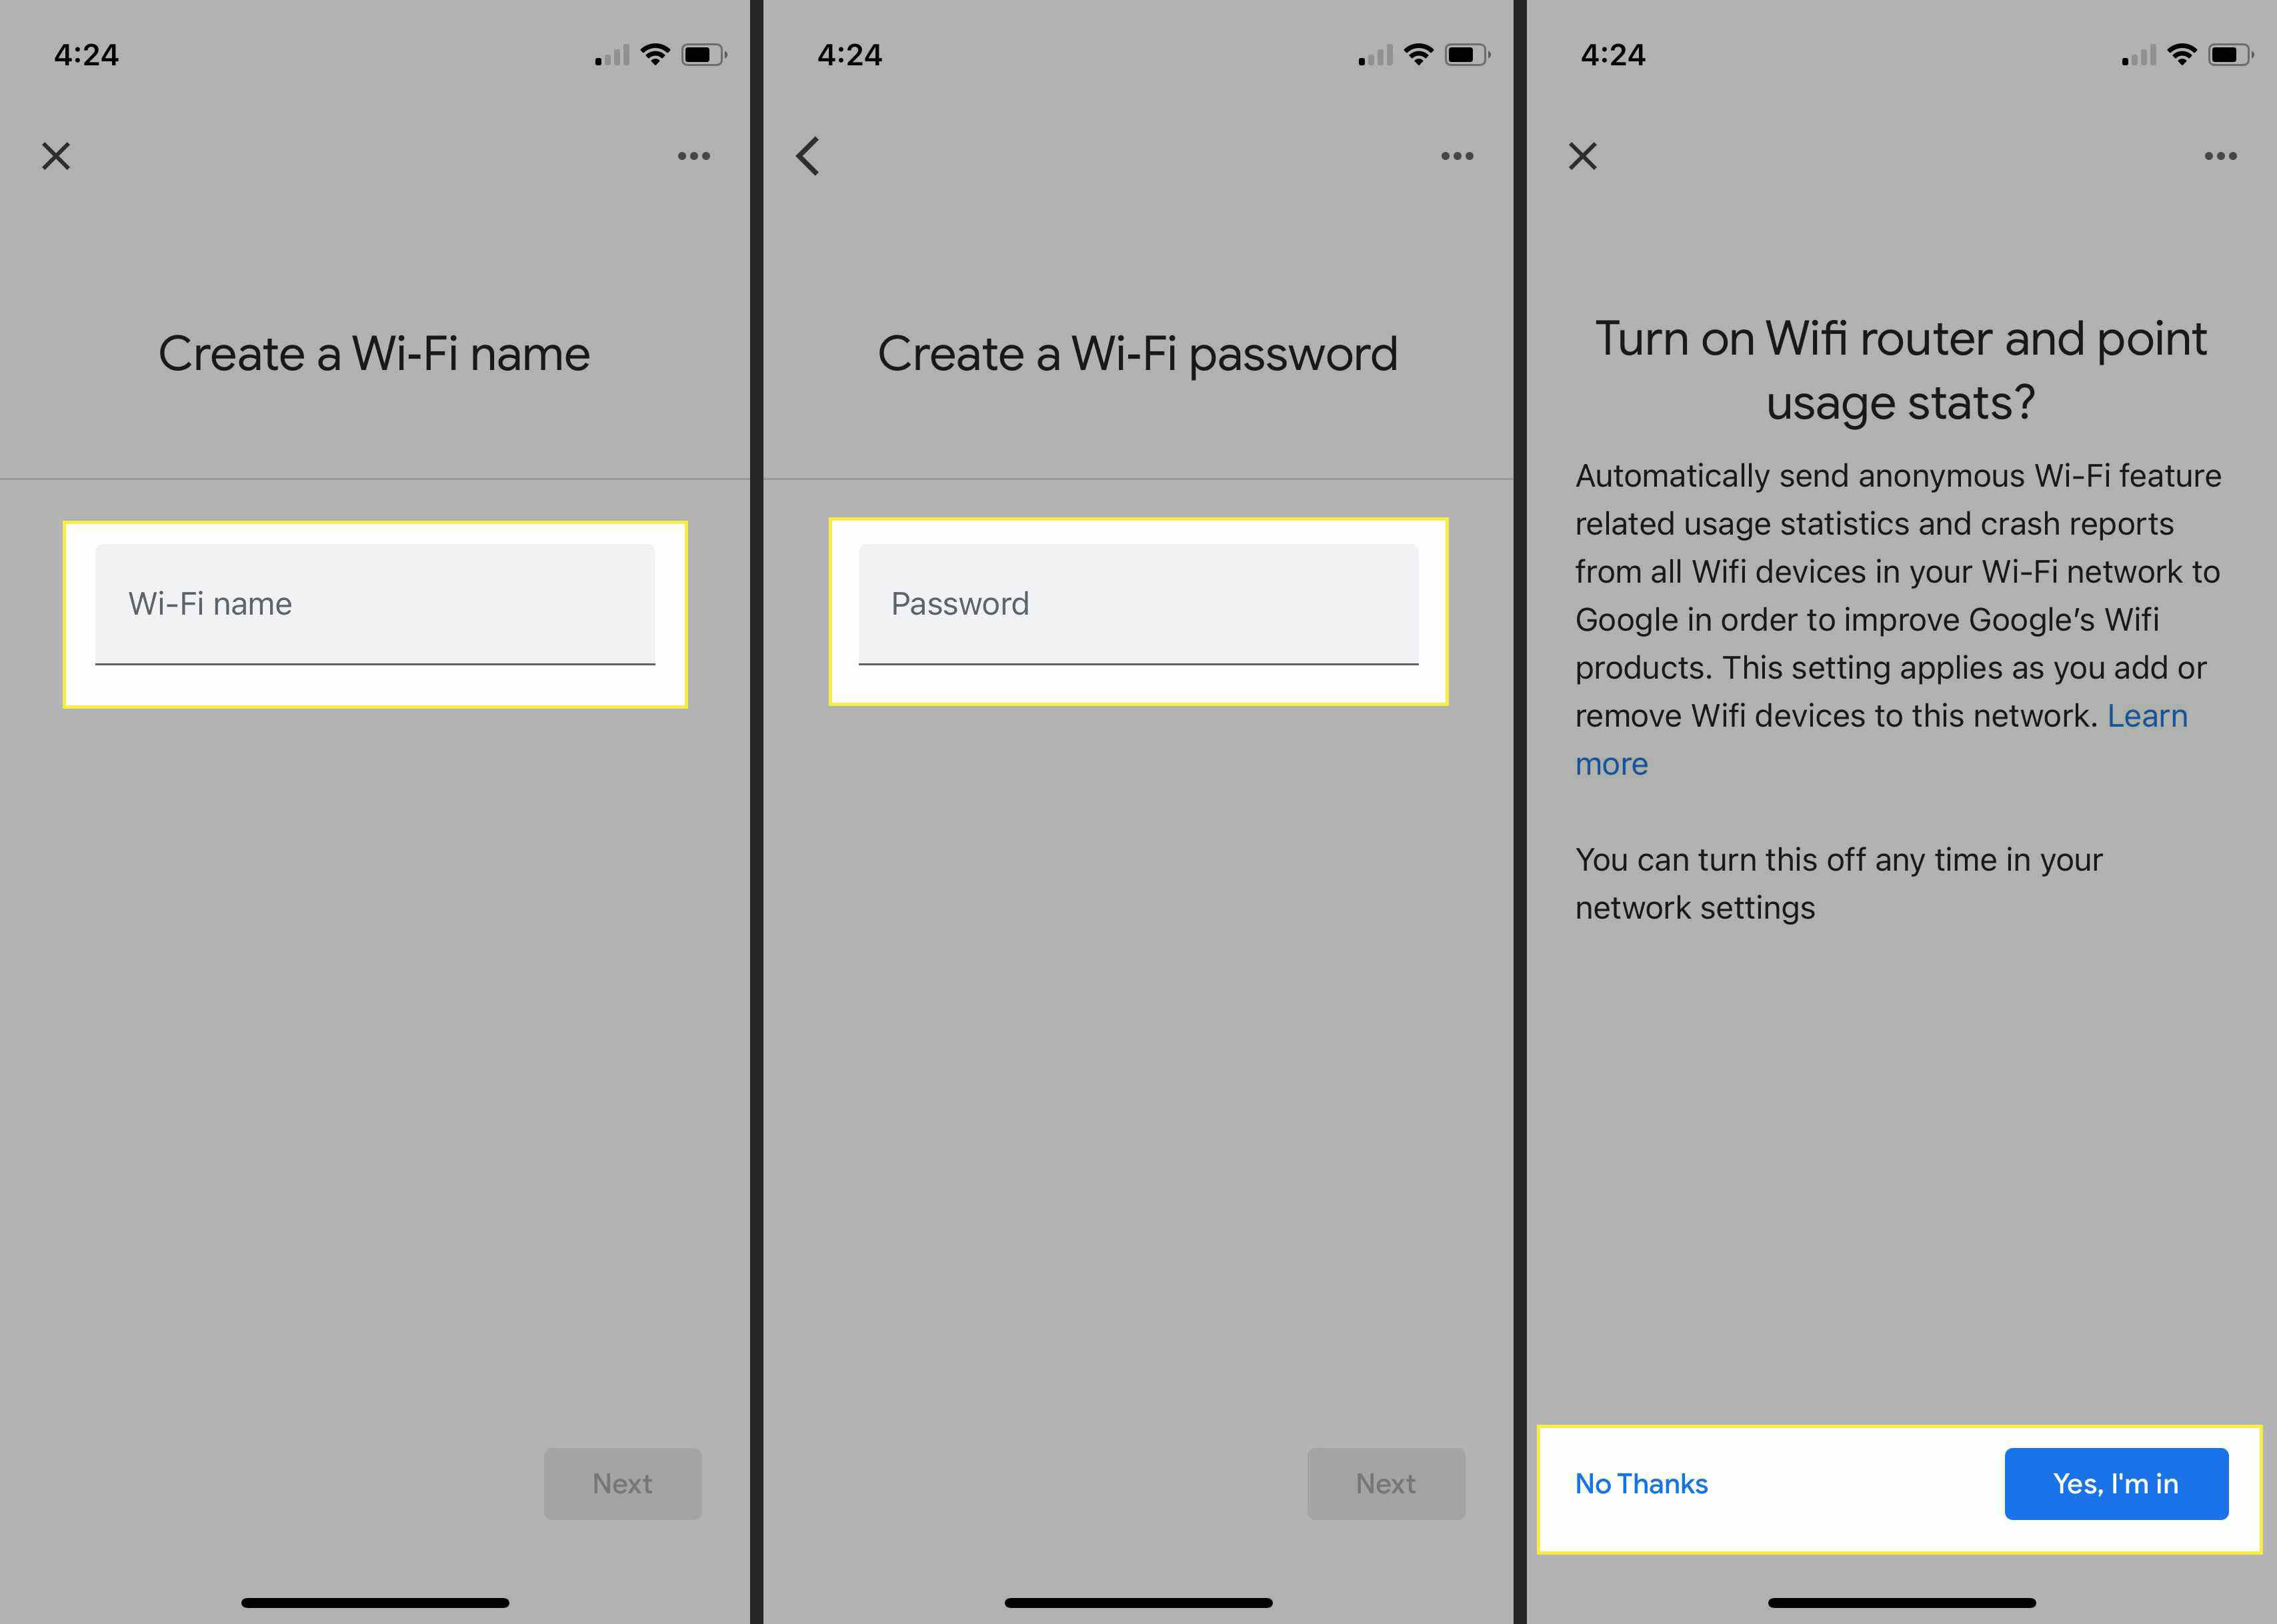 Initial steps to configuring your Google Nest system with Wi-Fi Name, Password, and Usage stats options highlighted